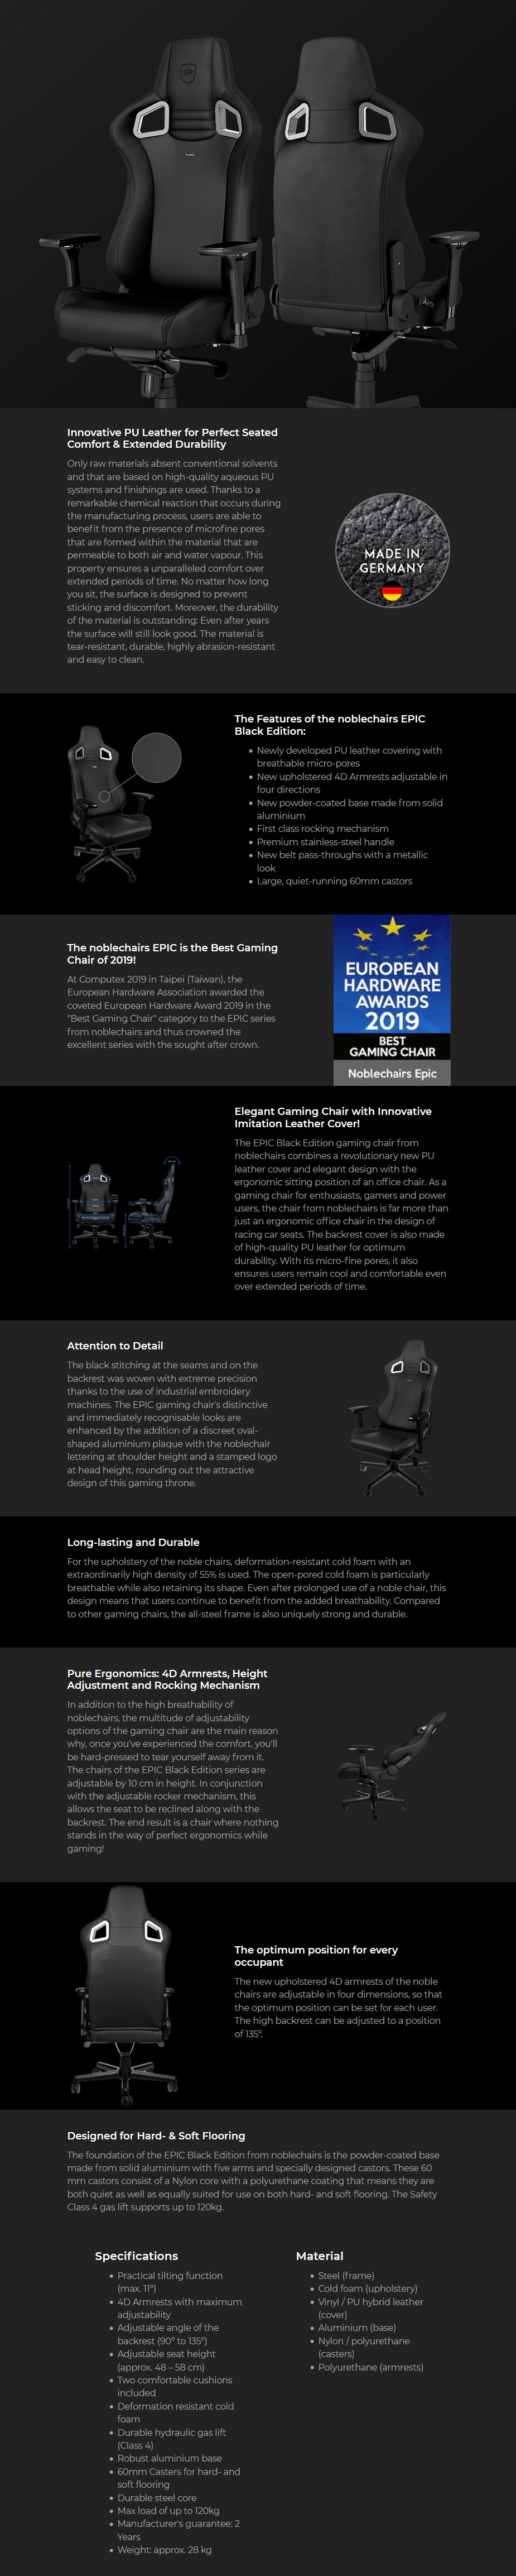 noblechairs EPIC Series Gaming Chair - Black Edition - Overview 1